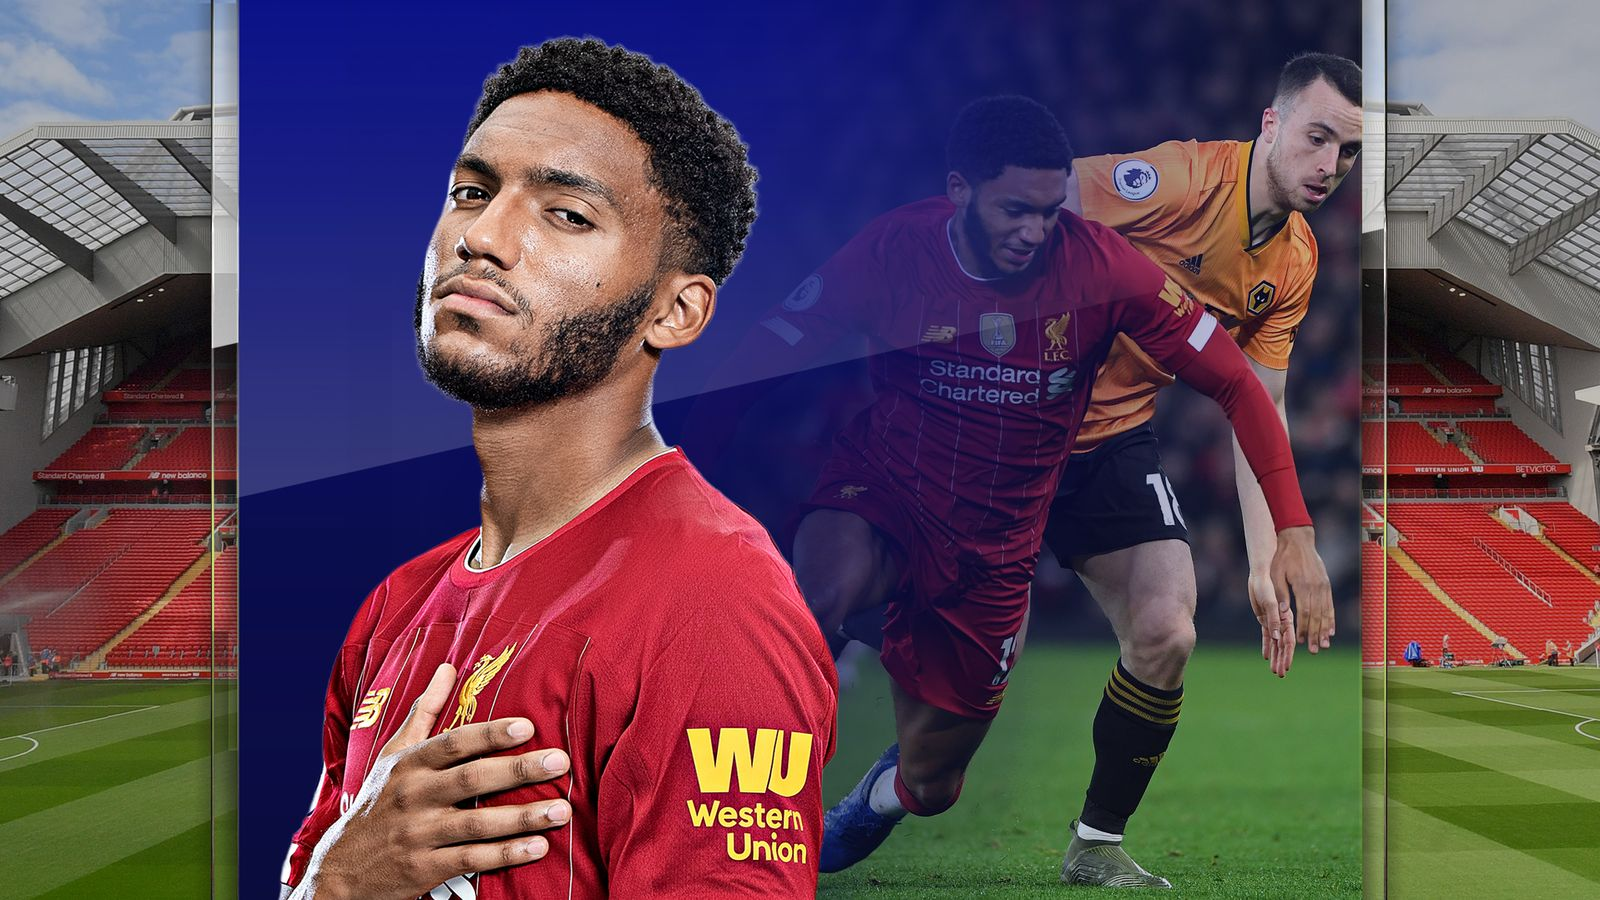 Joe Gomez has improved Liverpool defensively and can get better